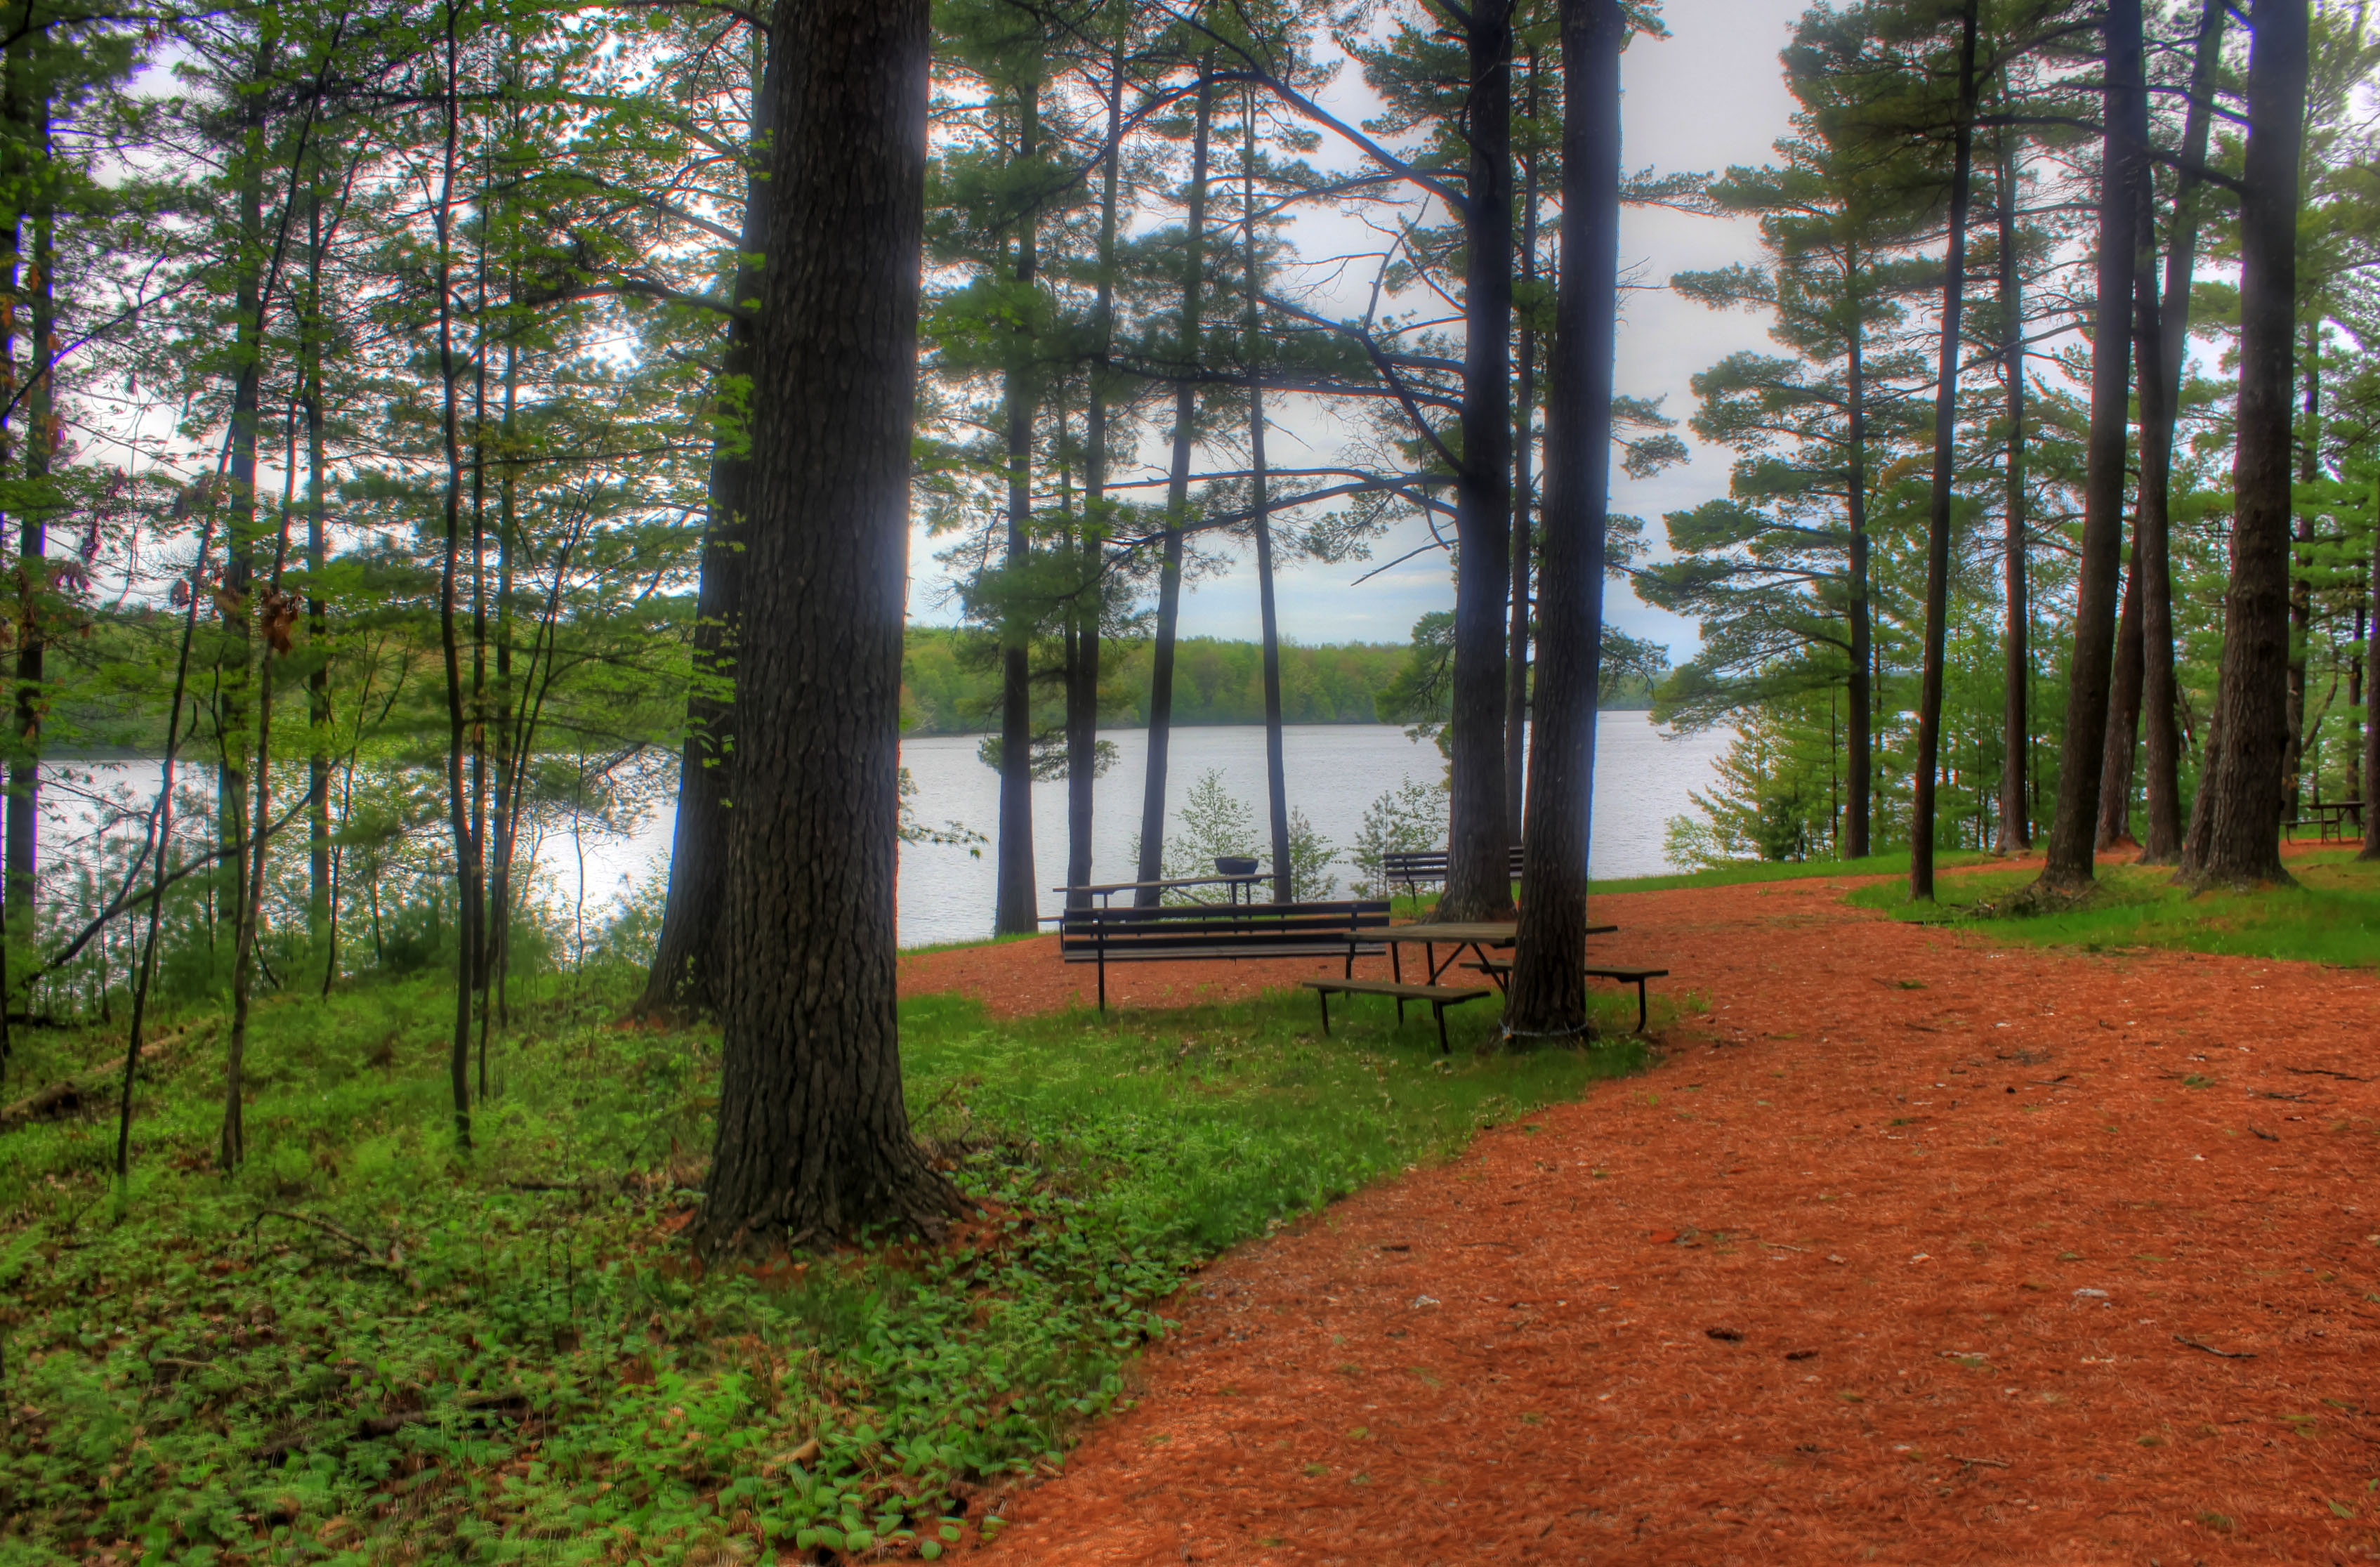 File:Gfp-wisconsin-council-grounds-state-park-hiking-path ...